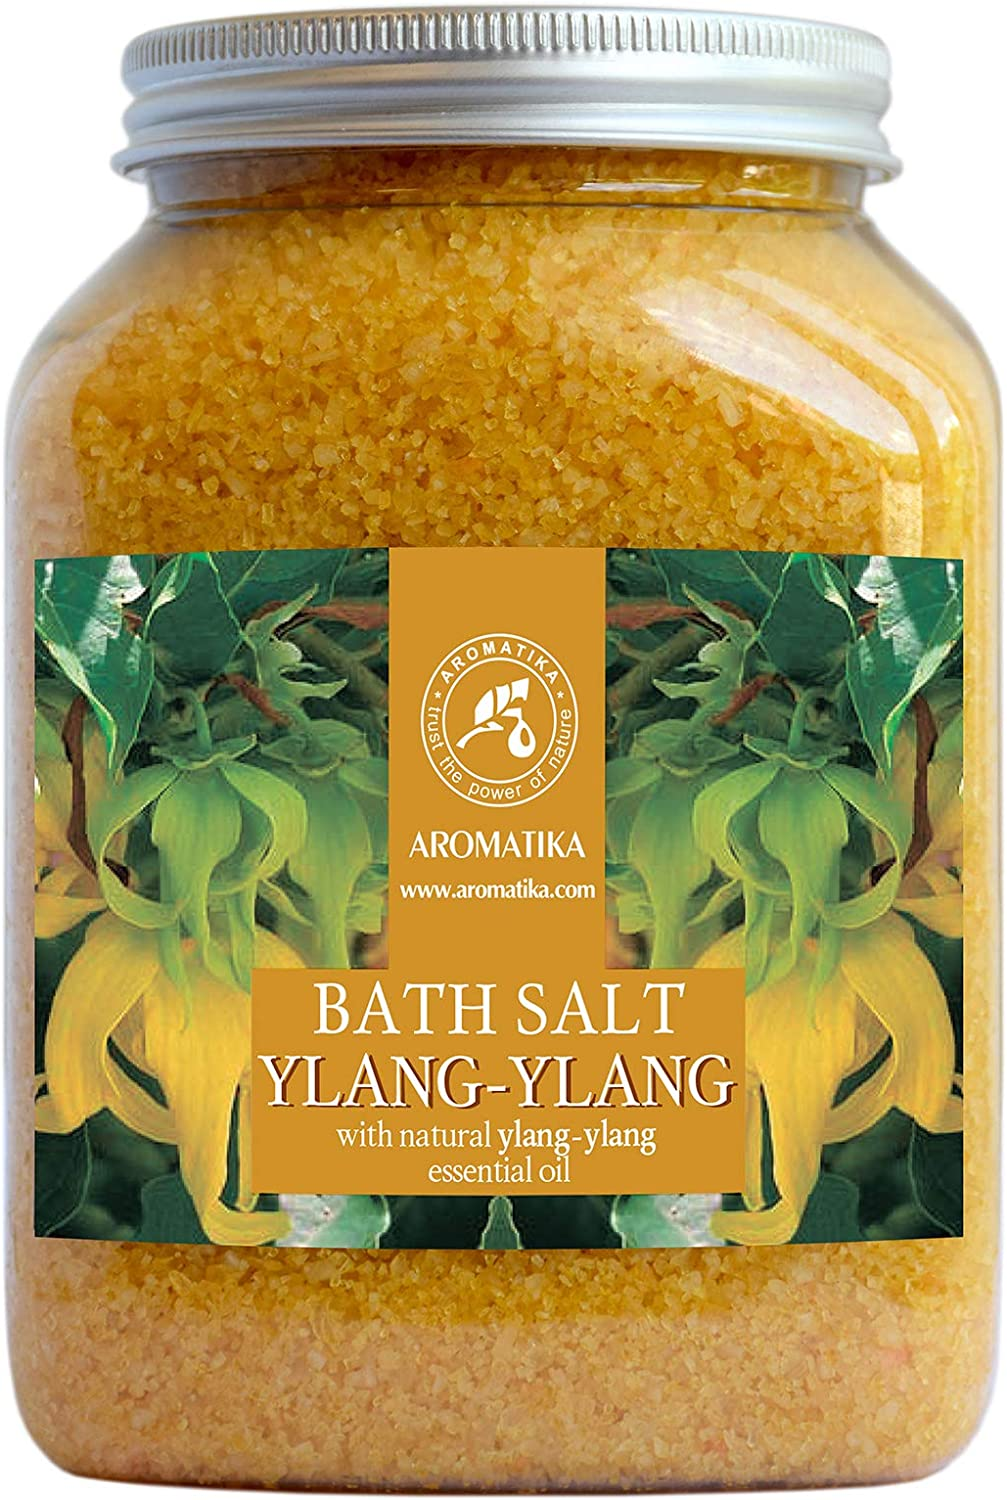 Ylang Ylang Bath Salts 46oz - 100% Natural Essential Ylang Oil - Best for Good Sleep & Relaxation - Bath Detox for Women - Bathing - Wellness - Beauty - Relaxation - Aromatherapy - Spa